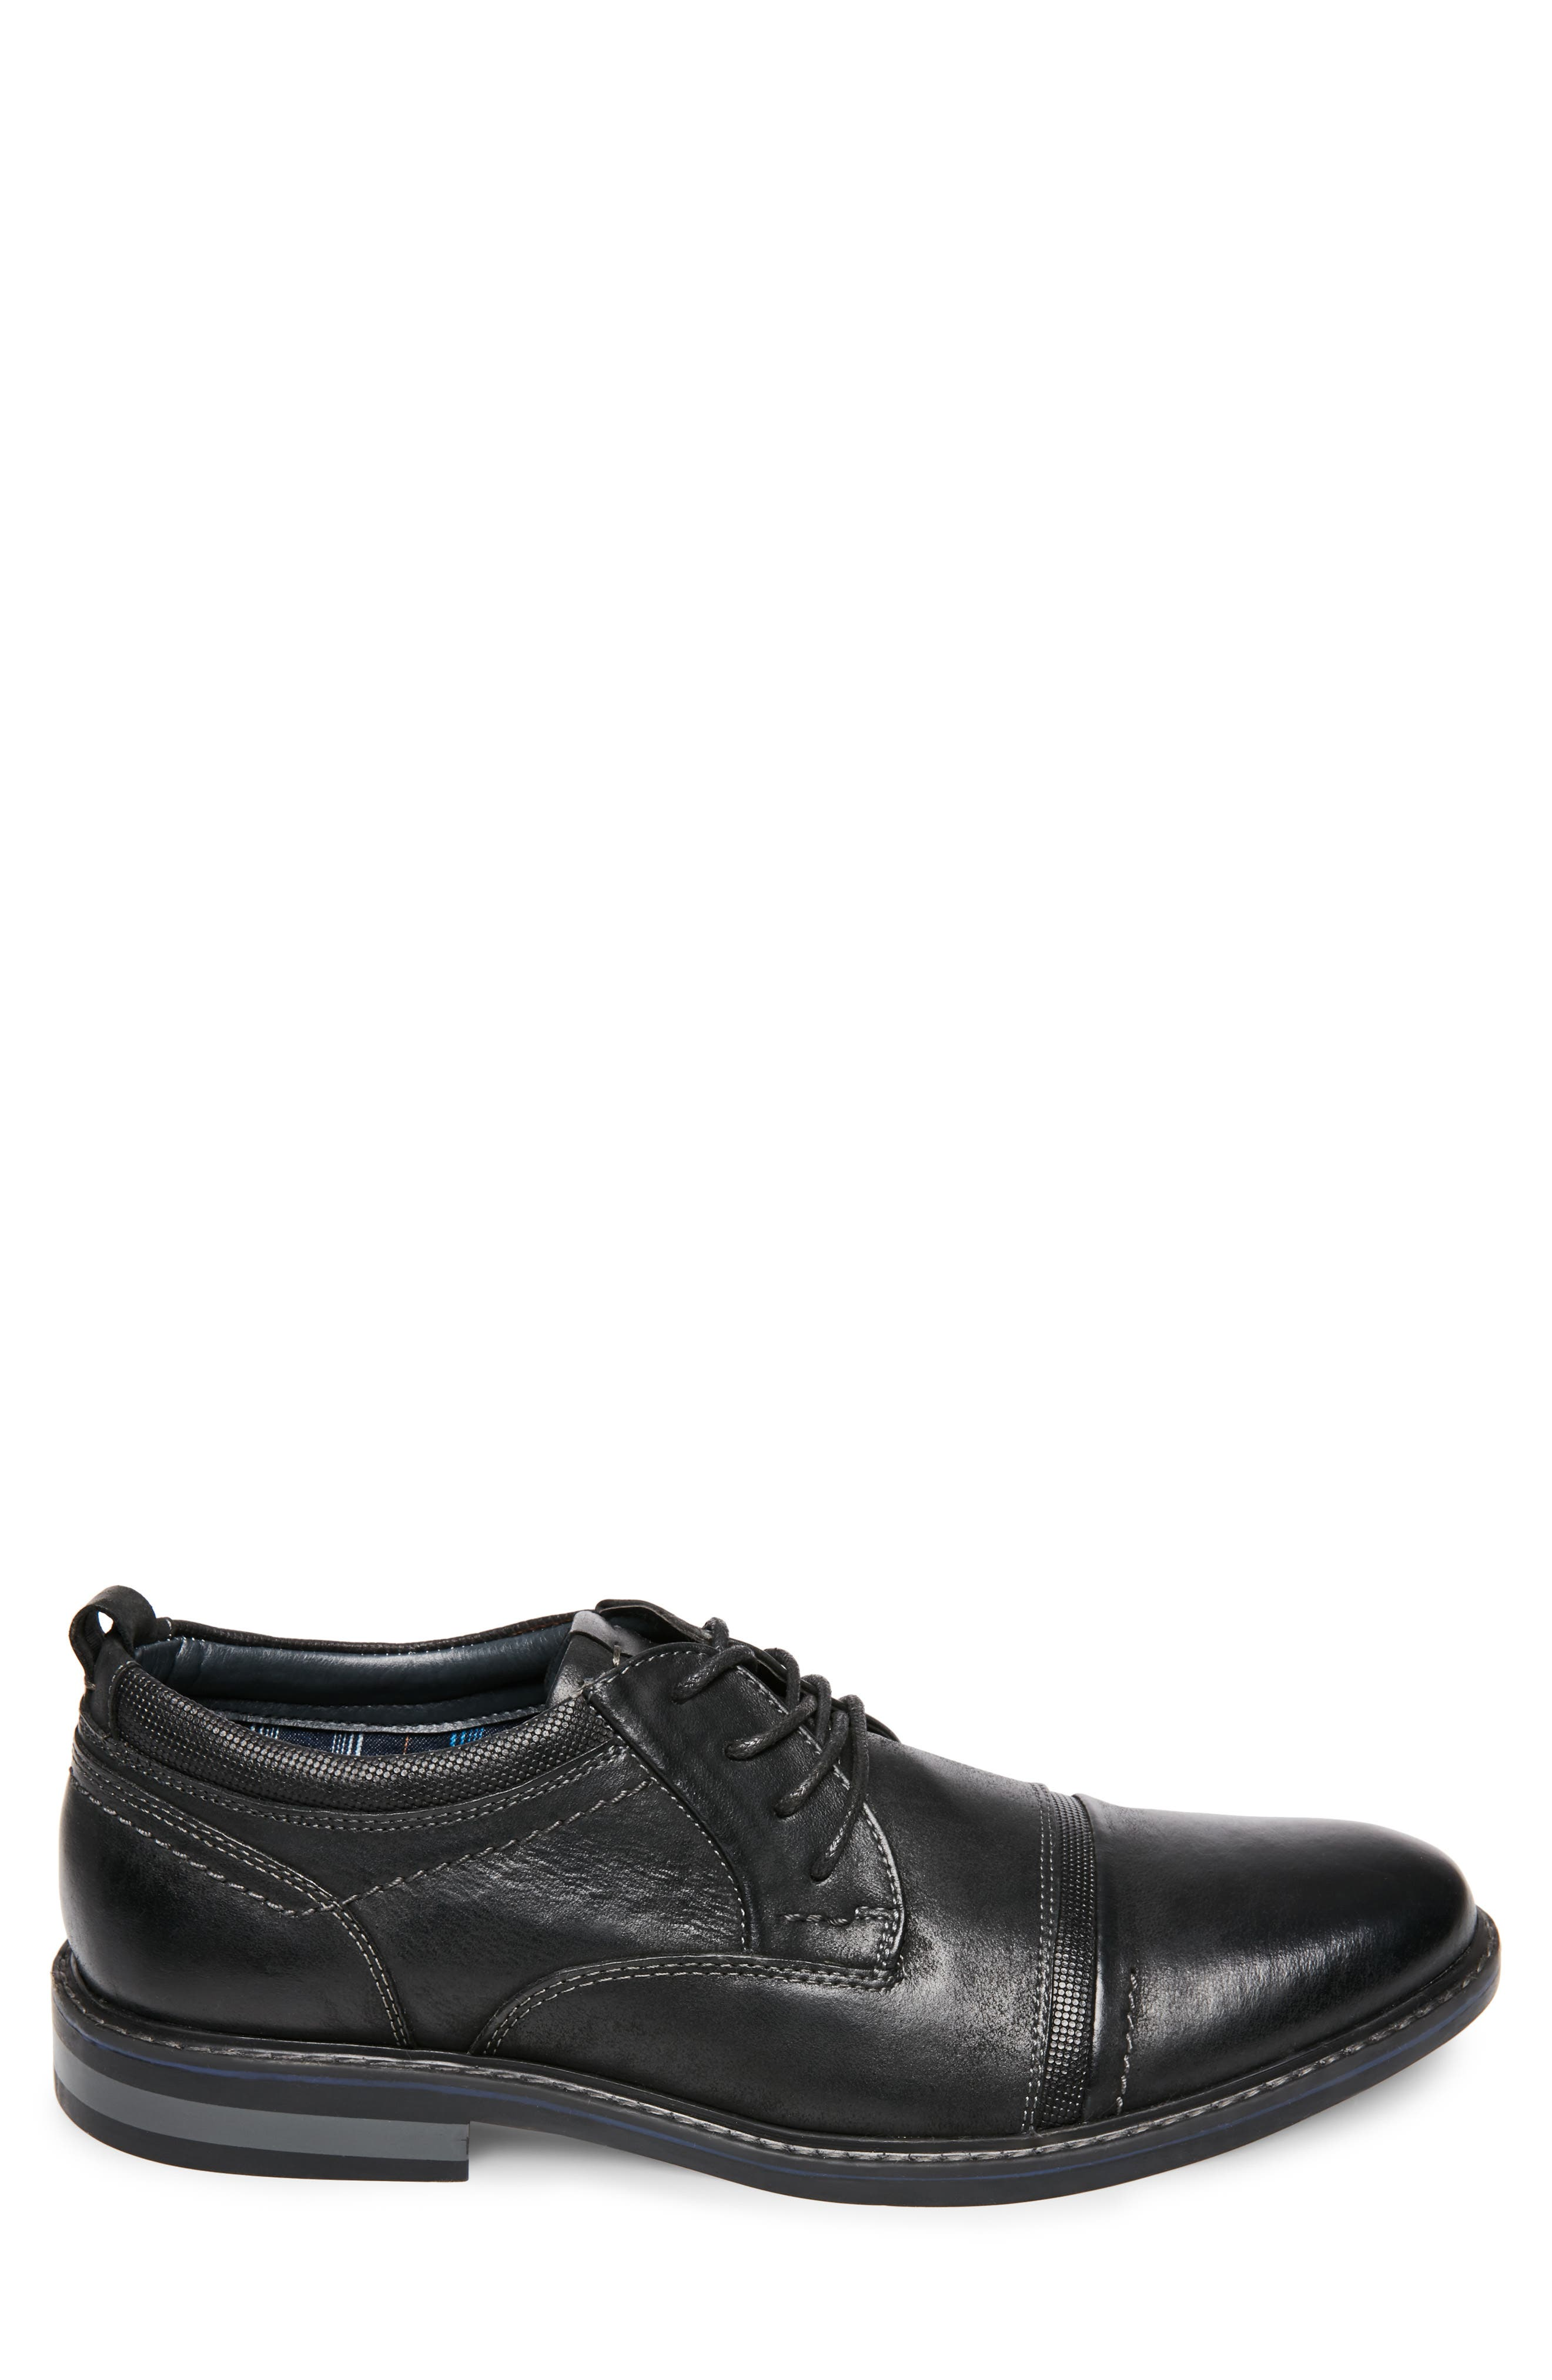 O'Leary Cap Toe Derby,                             Alternate thumbnail 3, color,                             BLACK LEATHER